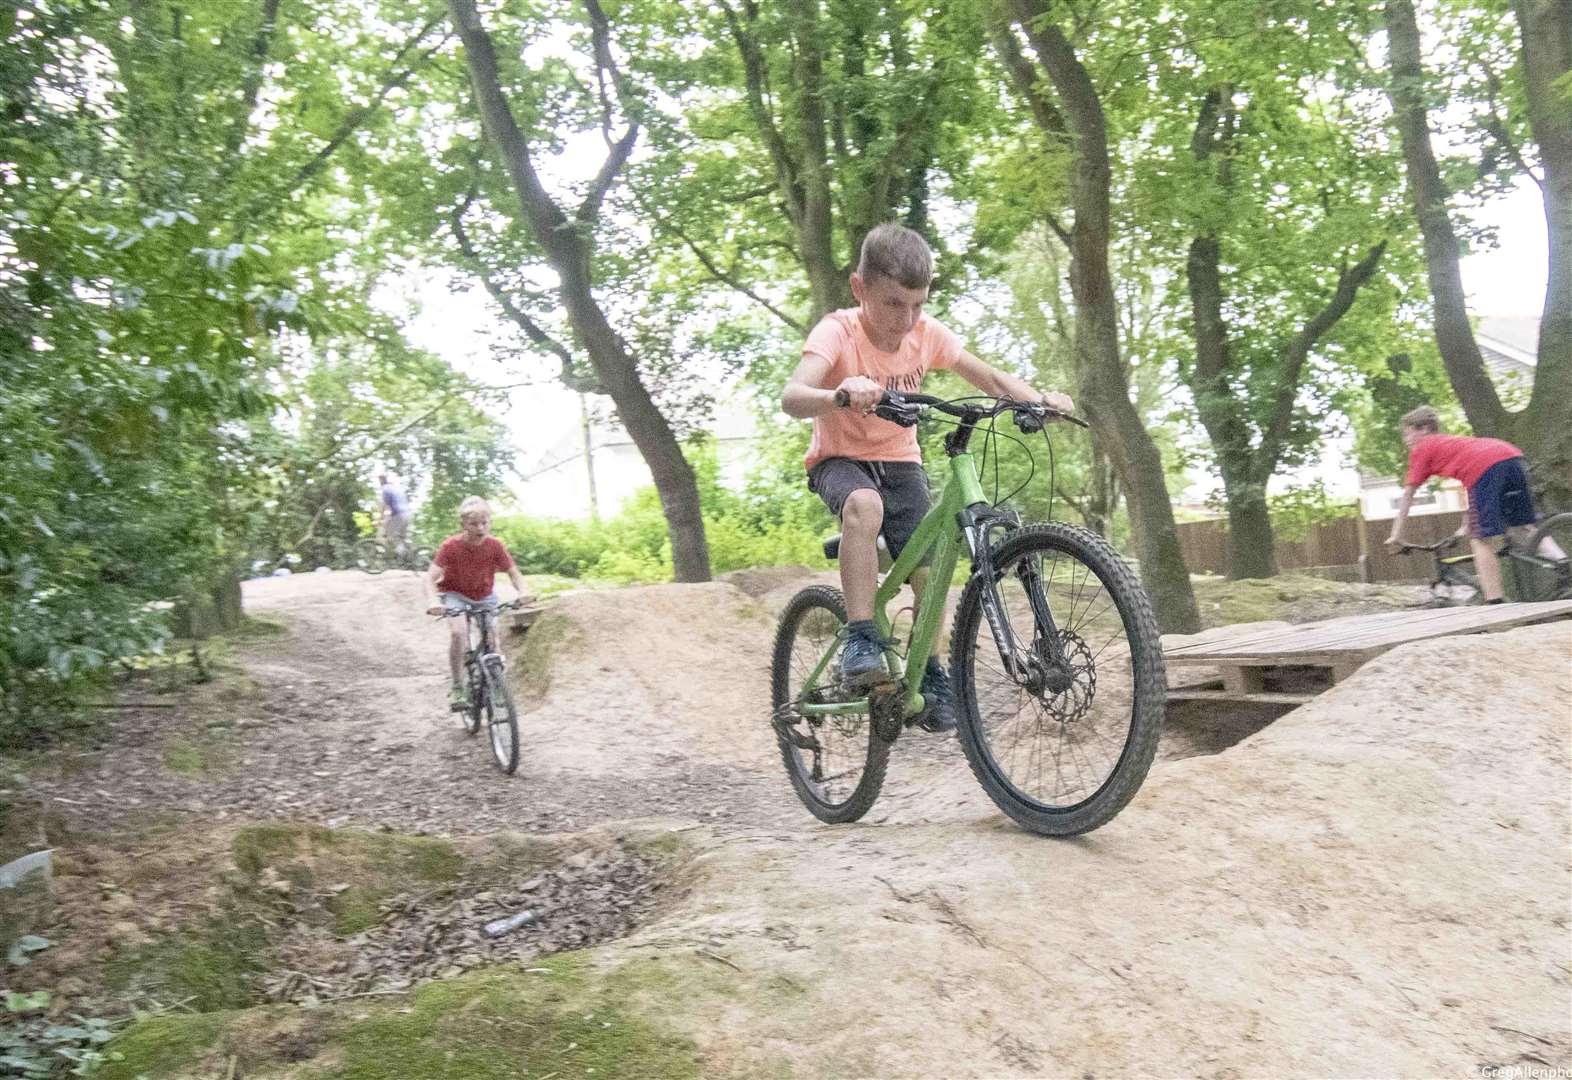 Anger as popular BMX track to be flattened within days